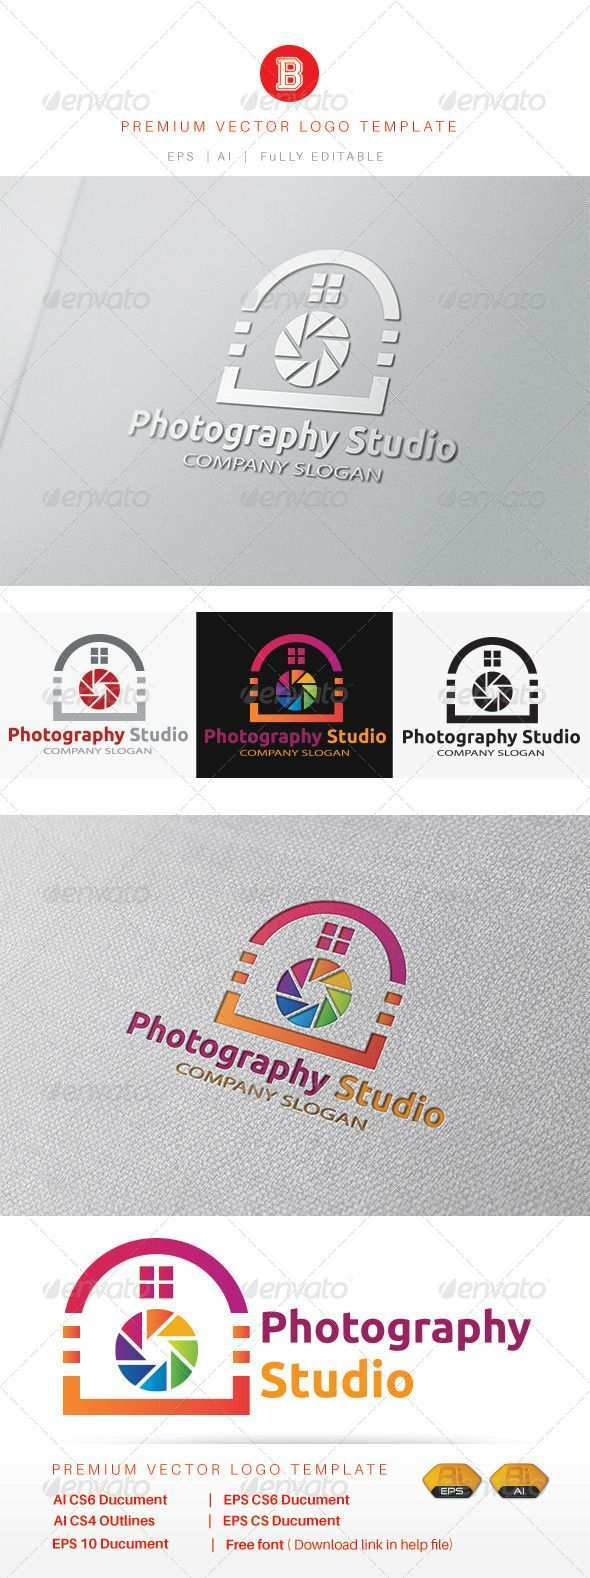 Photography Studio Studio Photography Photography Geometric Logo